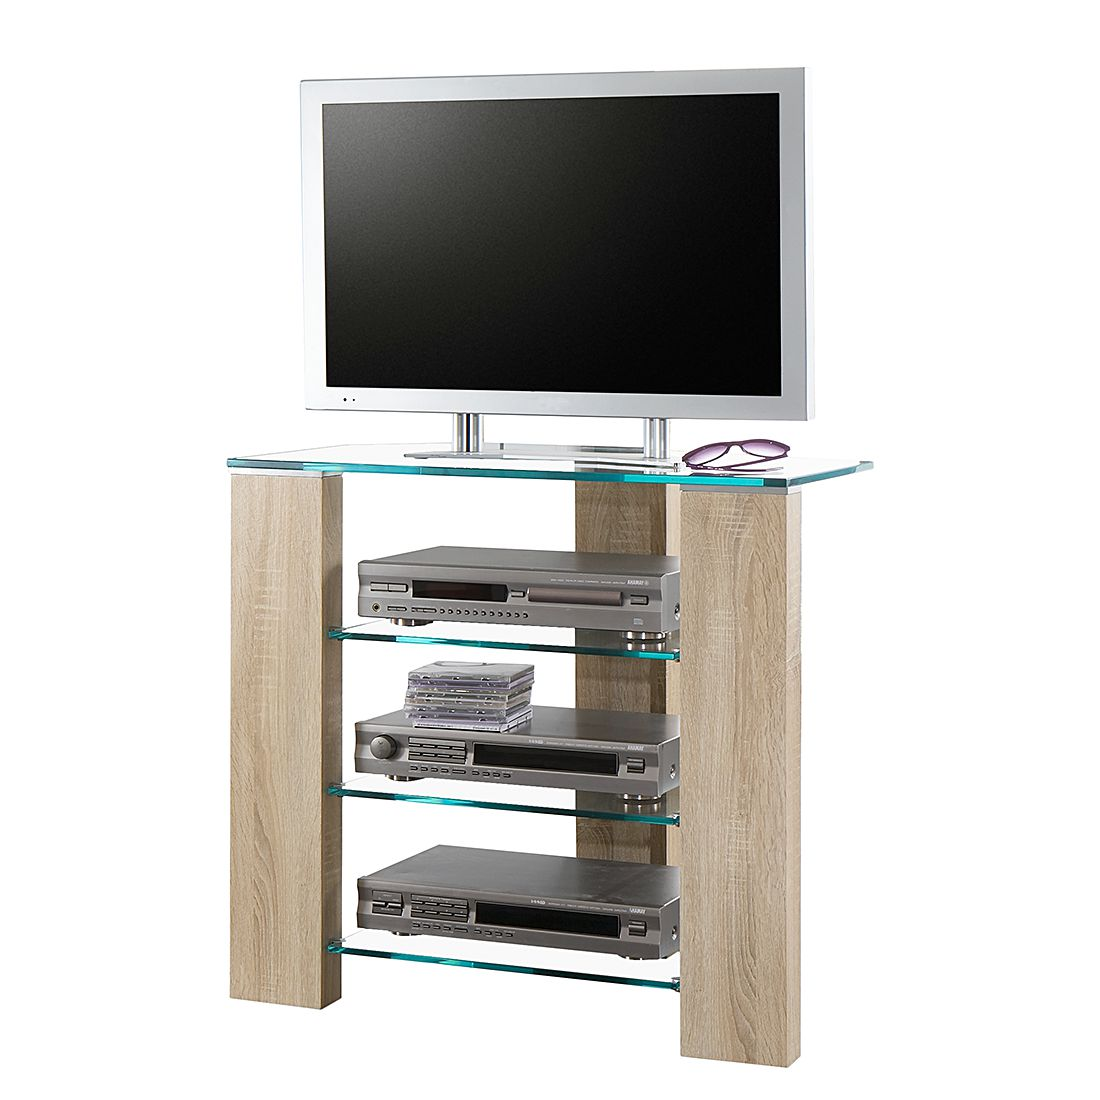 hifi rack amico eiche sonoma dekor glas bellinzona. Black Bedroom Furniture Sets. Home Design Ideas